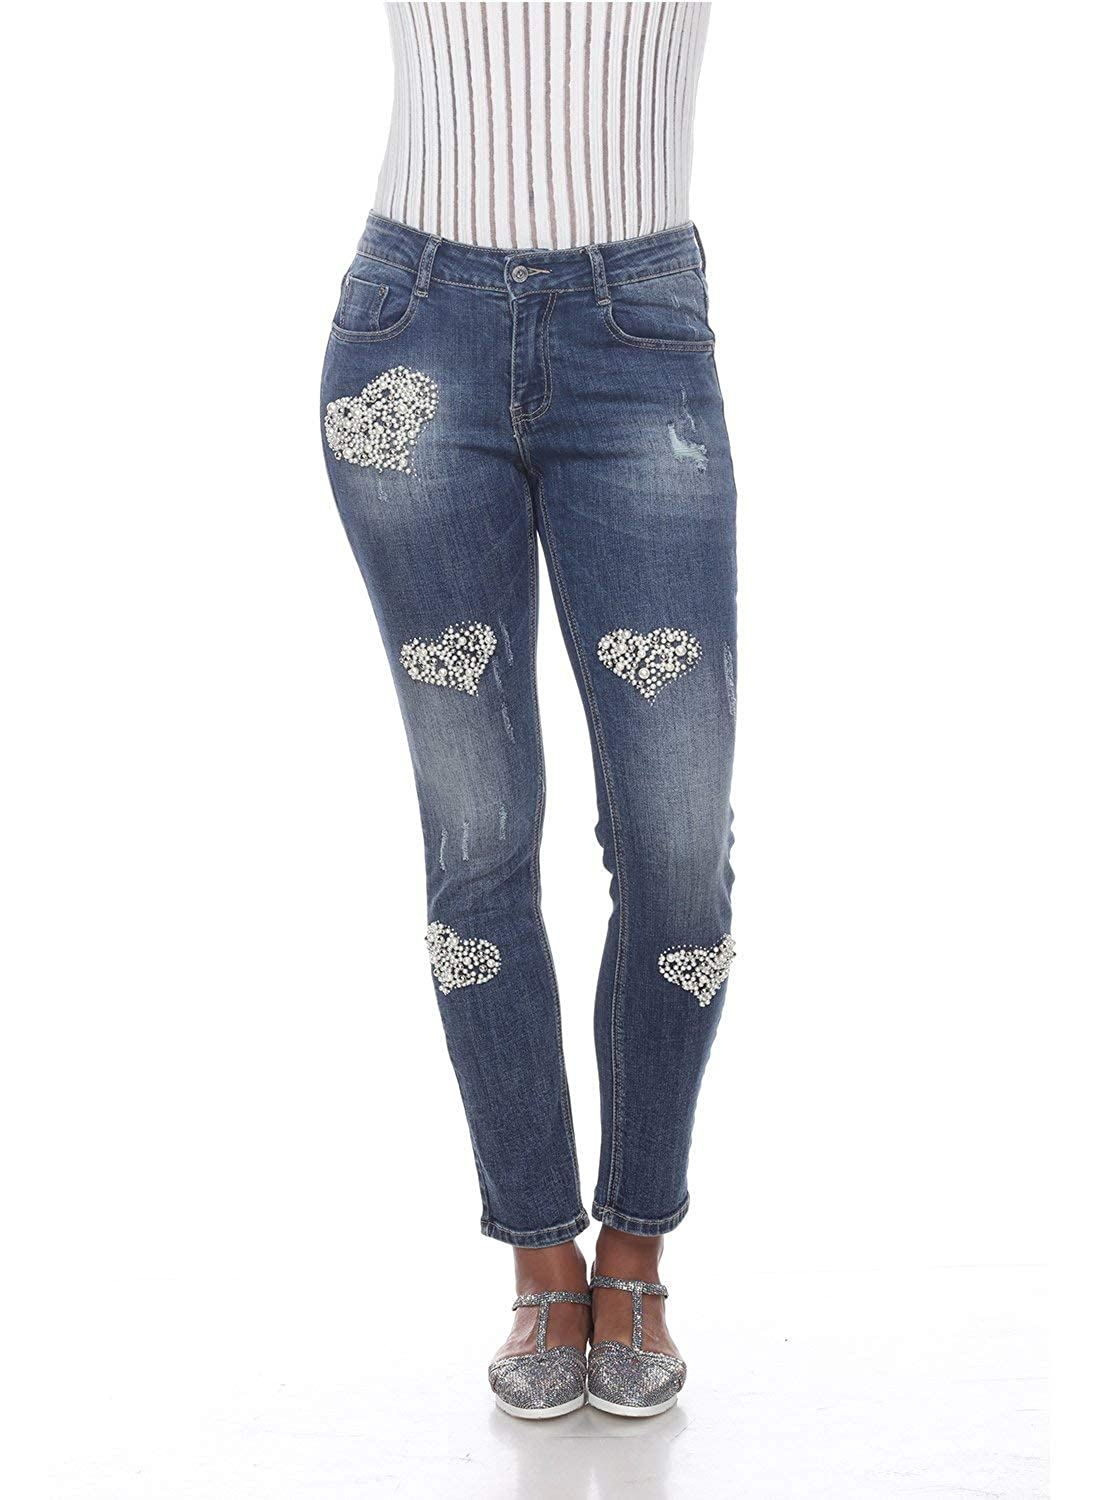 Womens Mid Wash Jeans with Heart Shaped Details Tesoro Moda